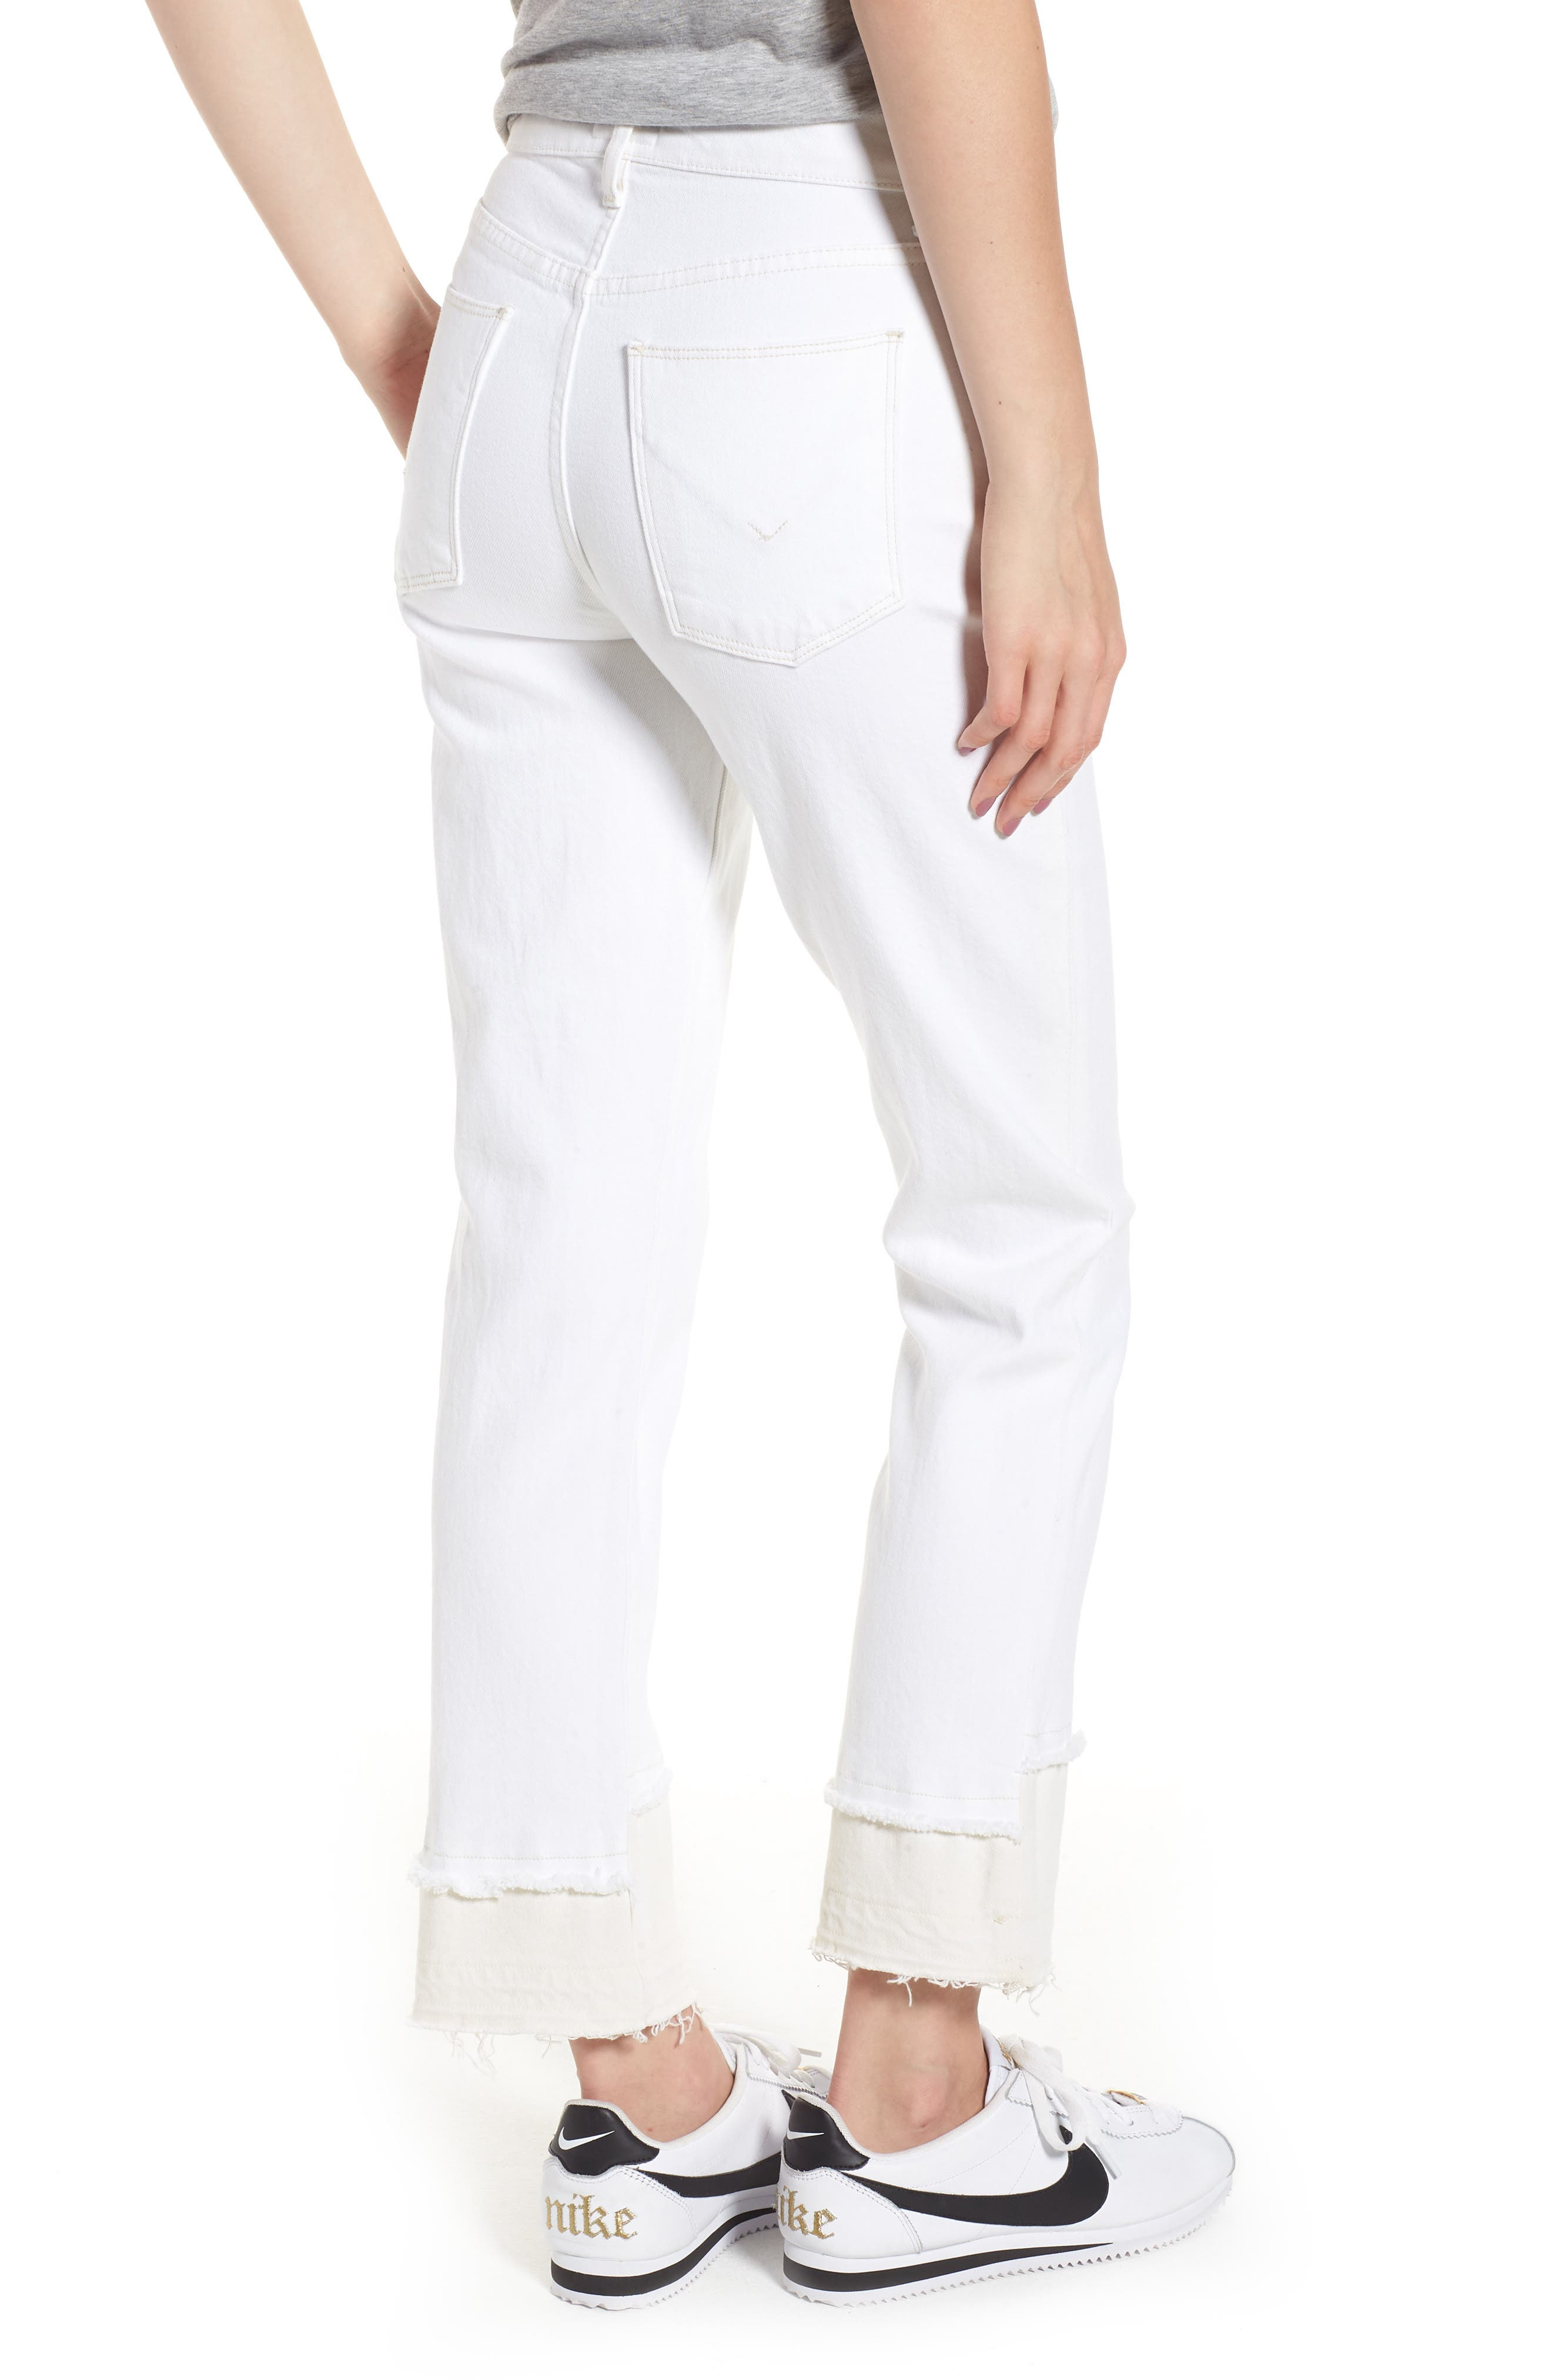 Zoeey High Waist Crop Straight Leg Jeans,                             Alternate thumbnail 2, color,                             Stepped White